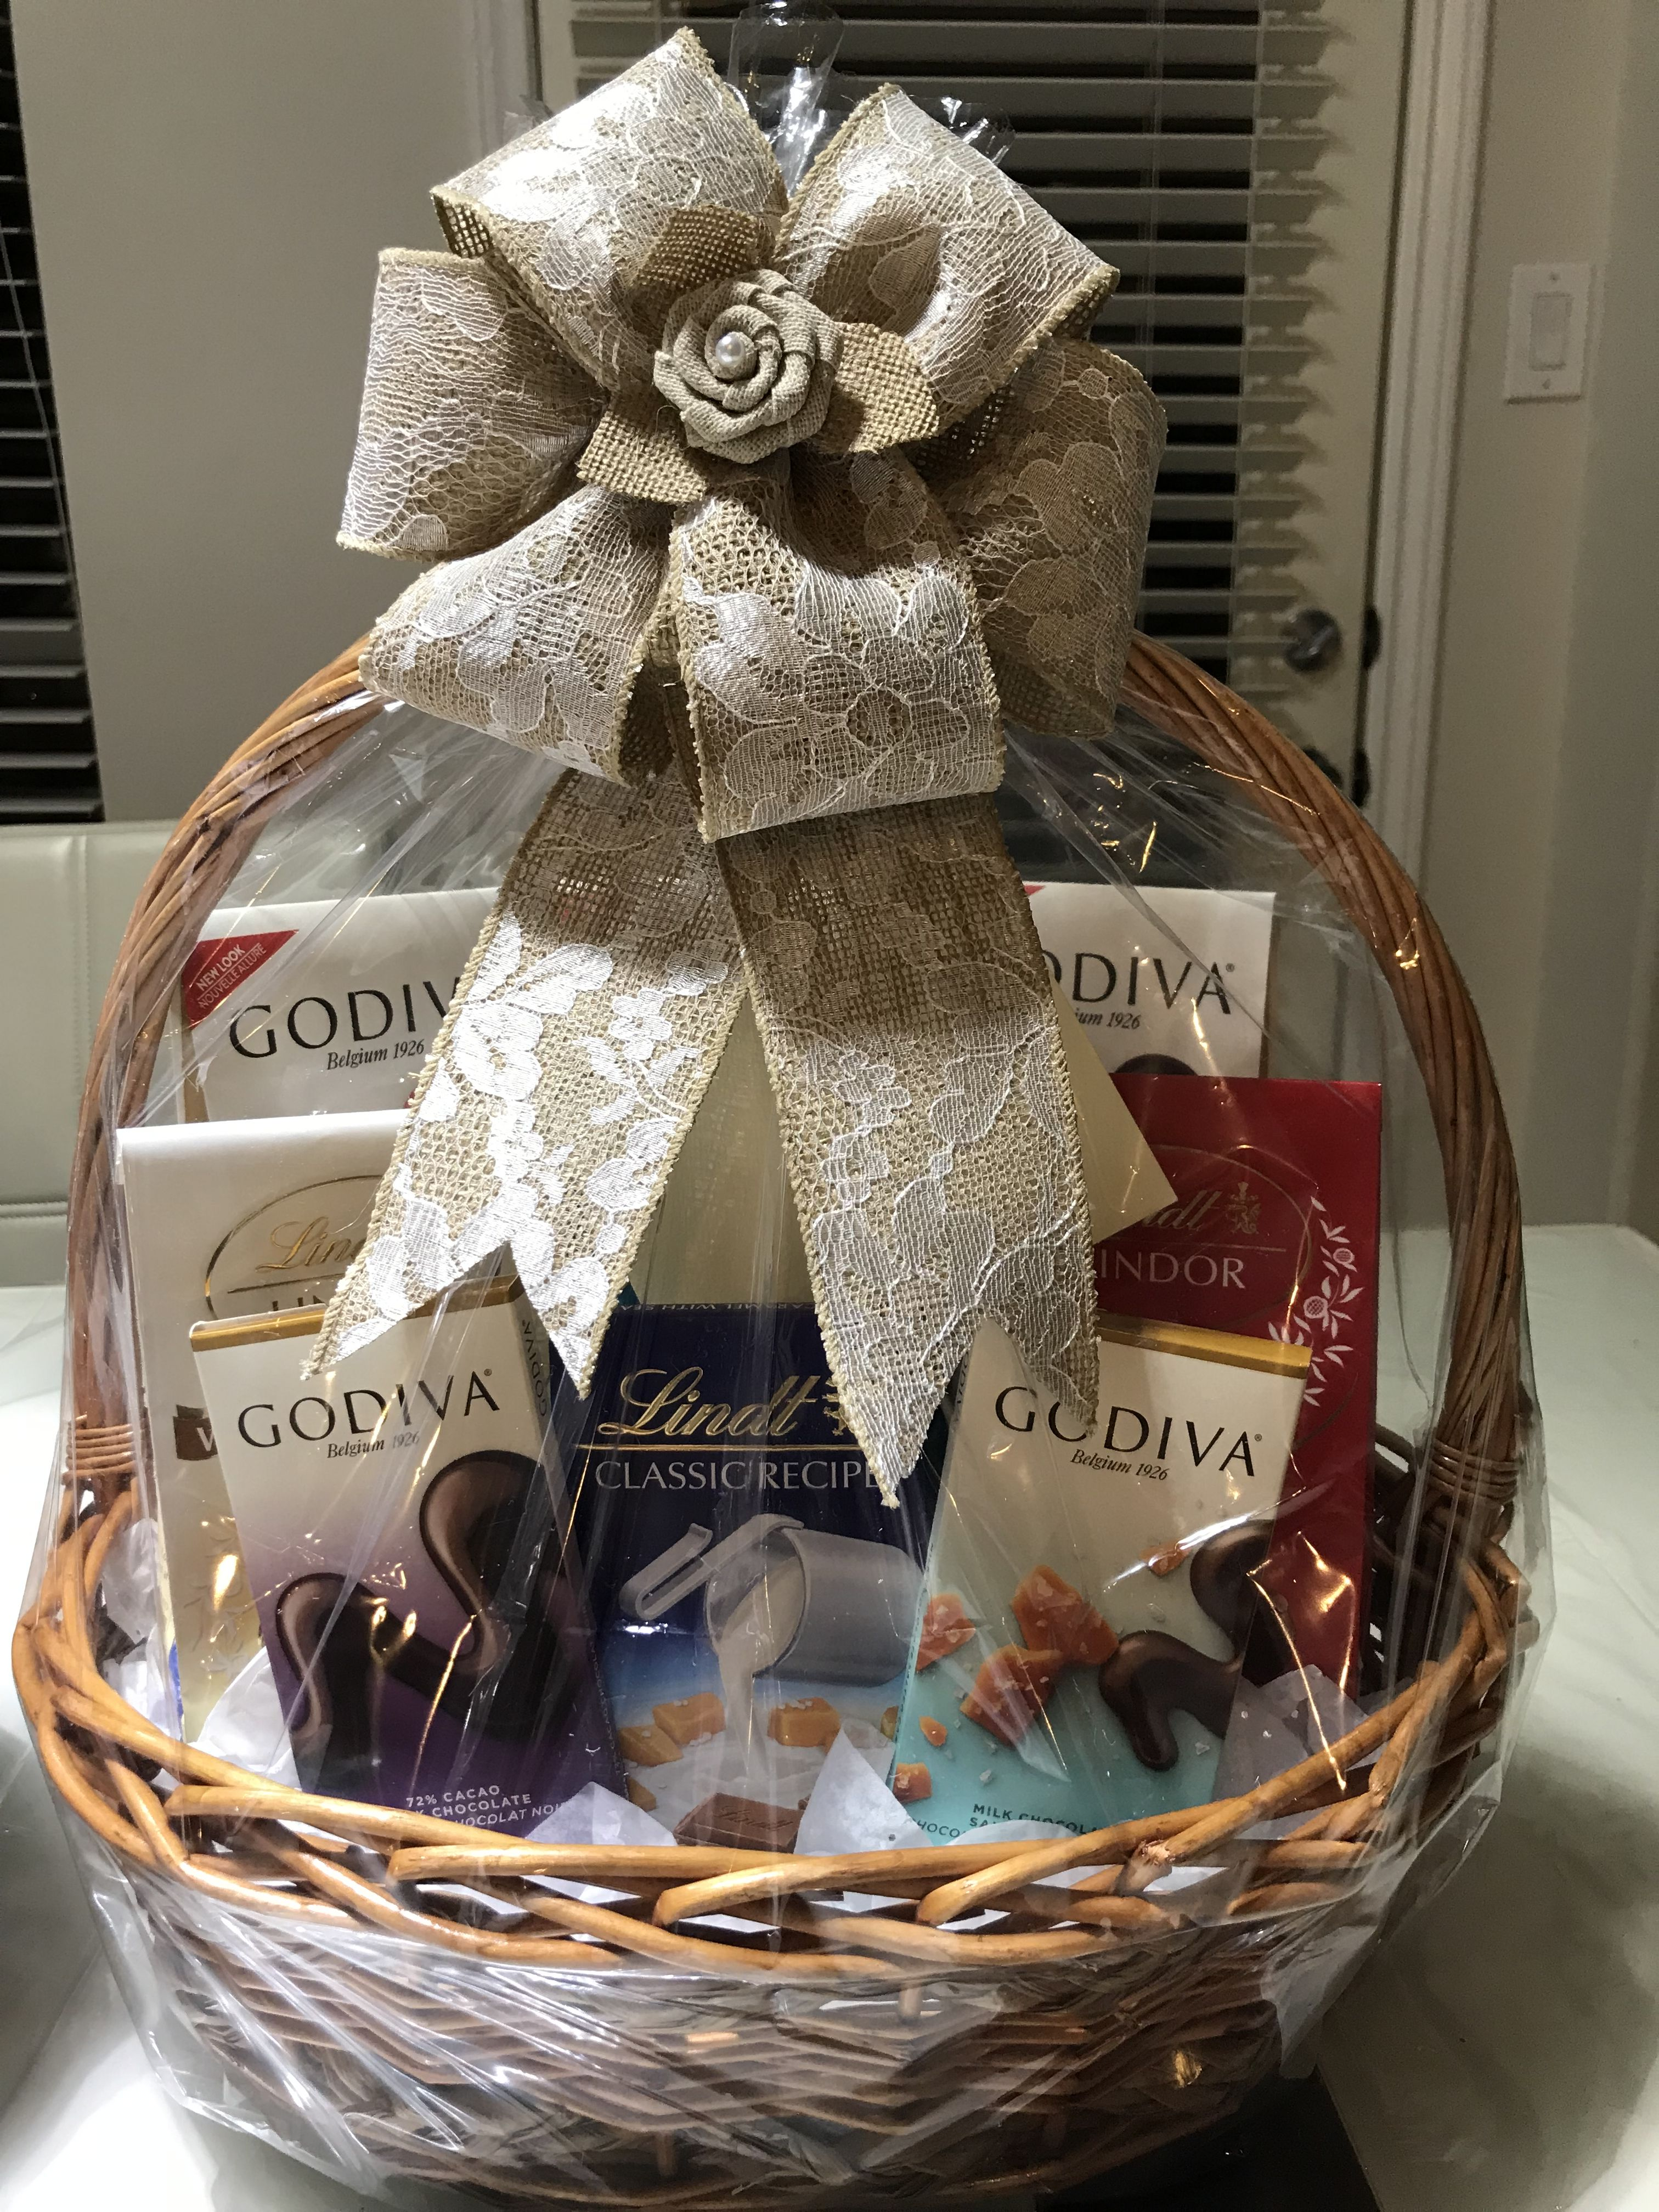 Chocolate Gift Baskets Chocolate Gifts Basket Basket Decoration